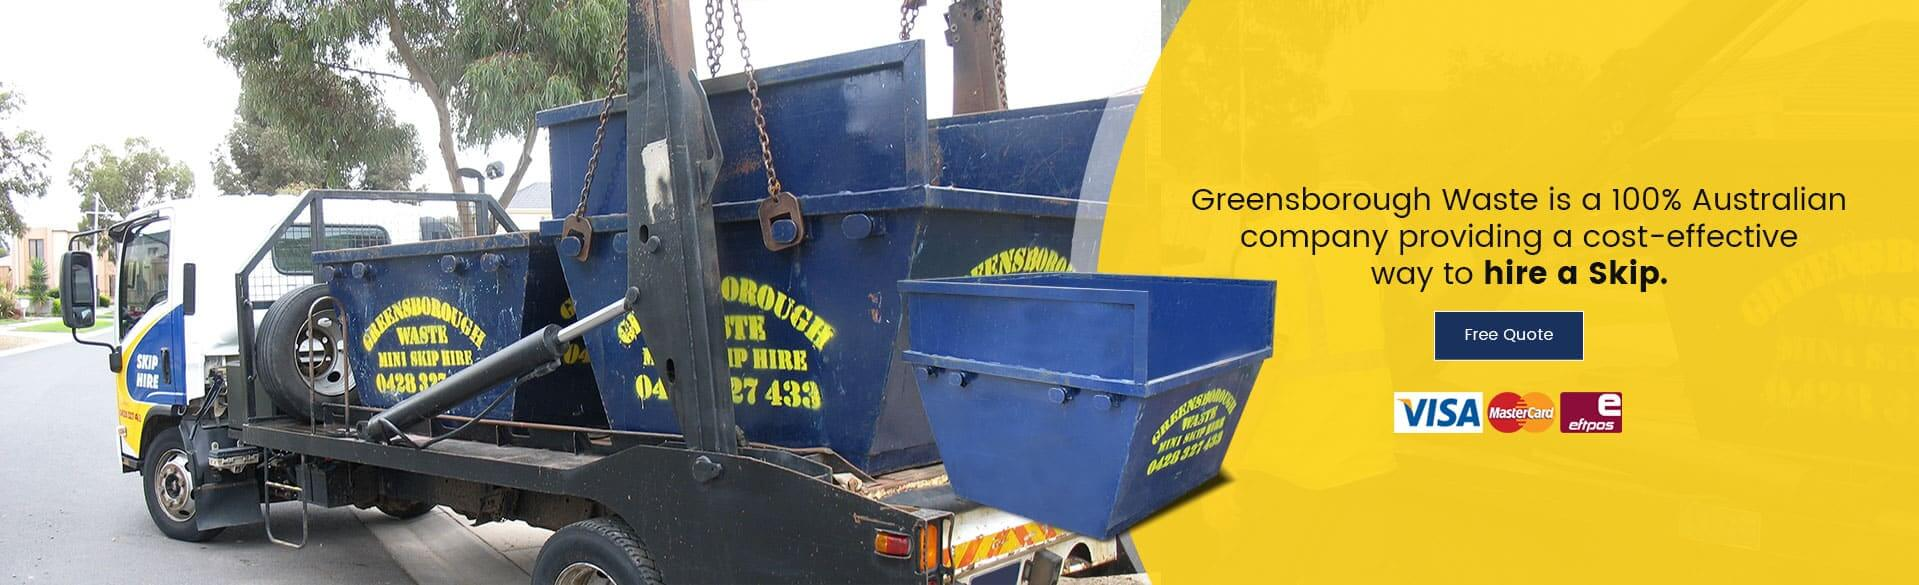 greensborough-waste-banner1